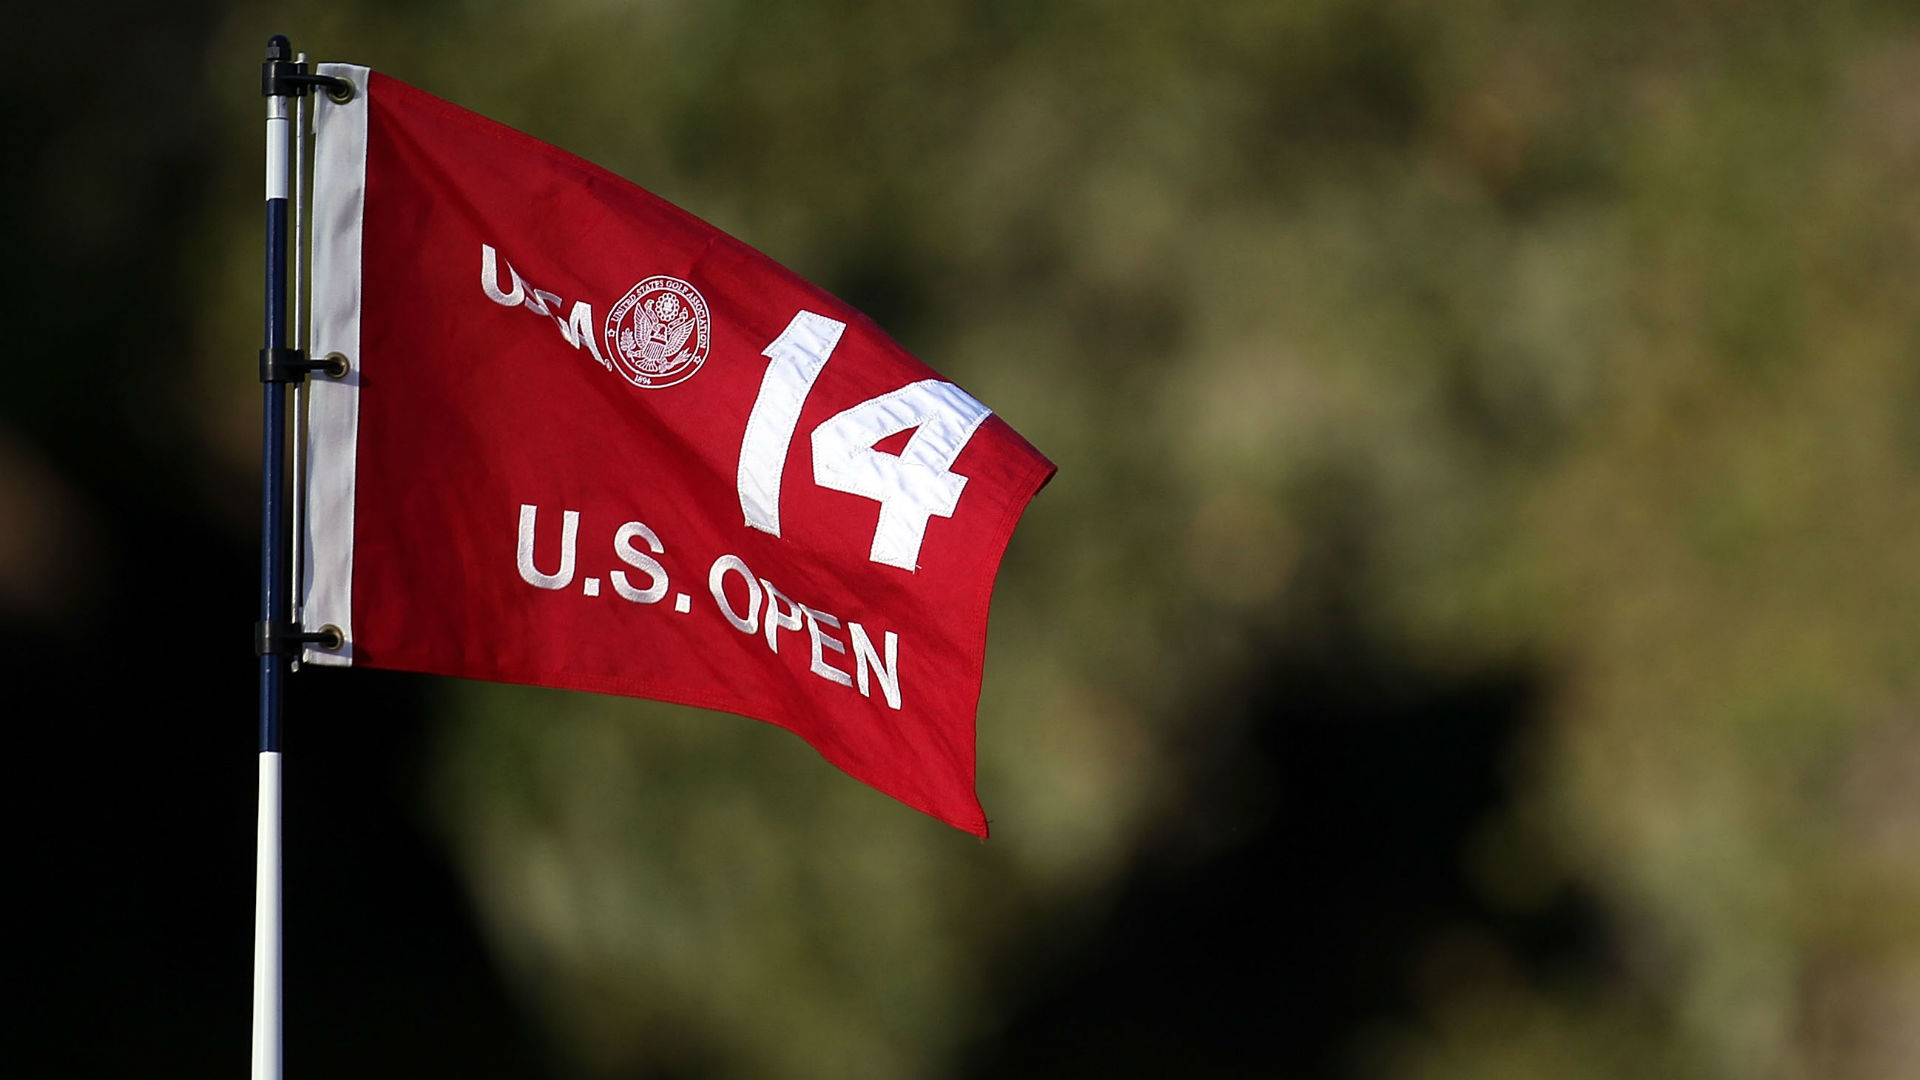 Golfer Clifton McDonald shoots 55 over in US Open qualifier